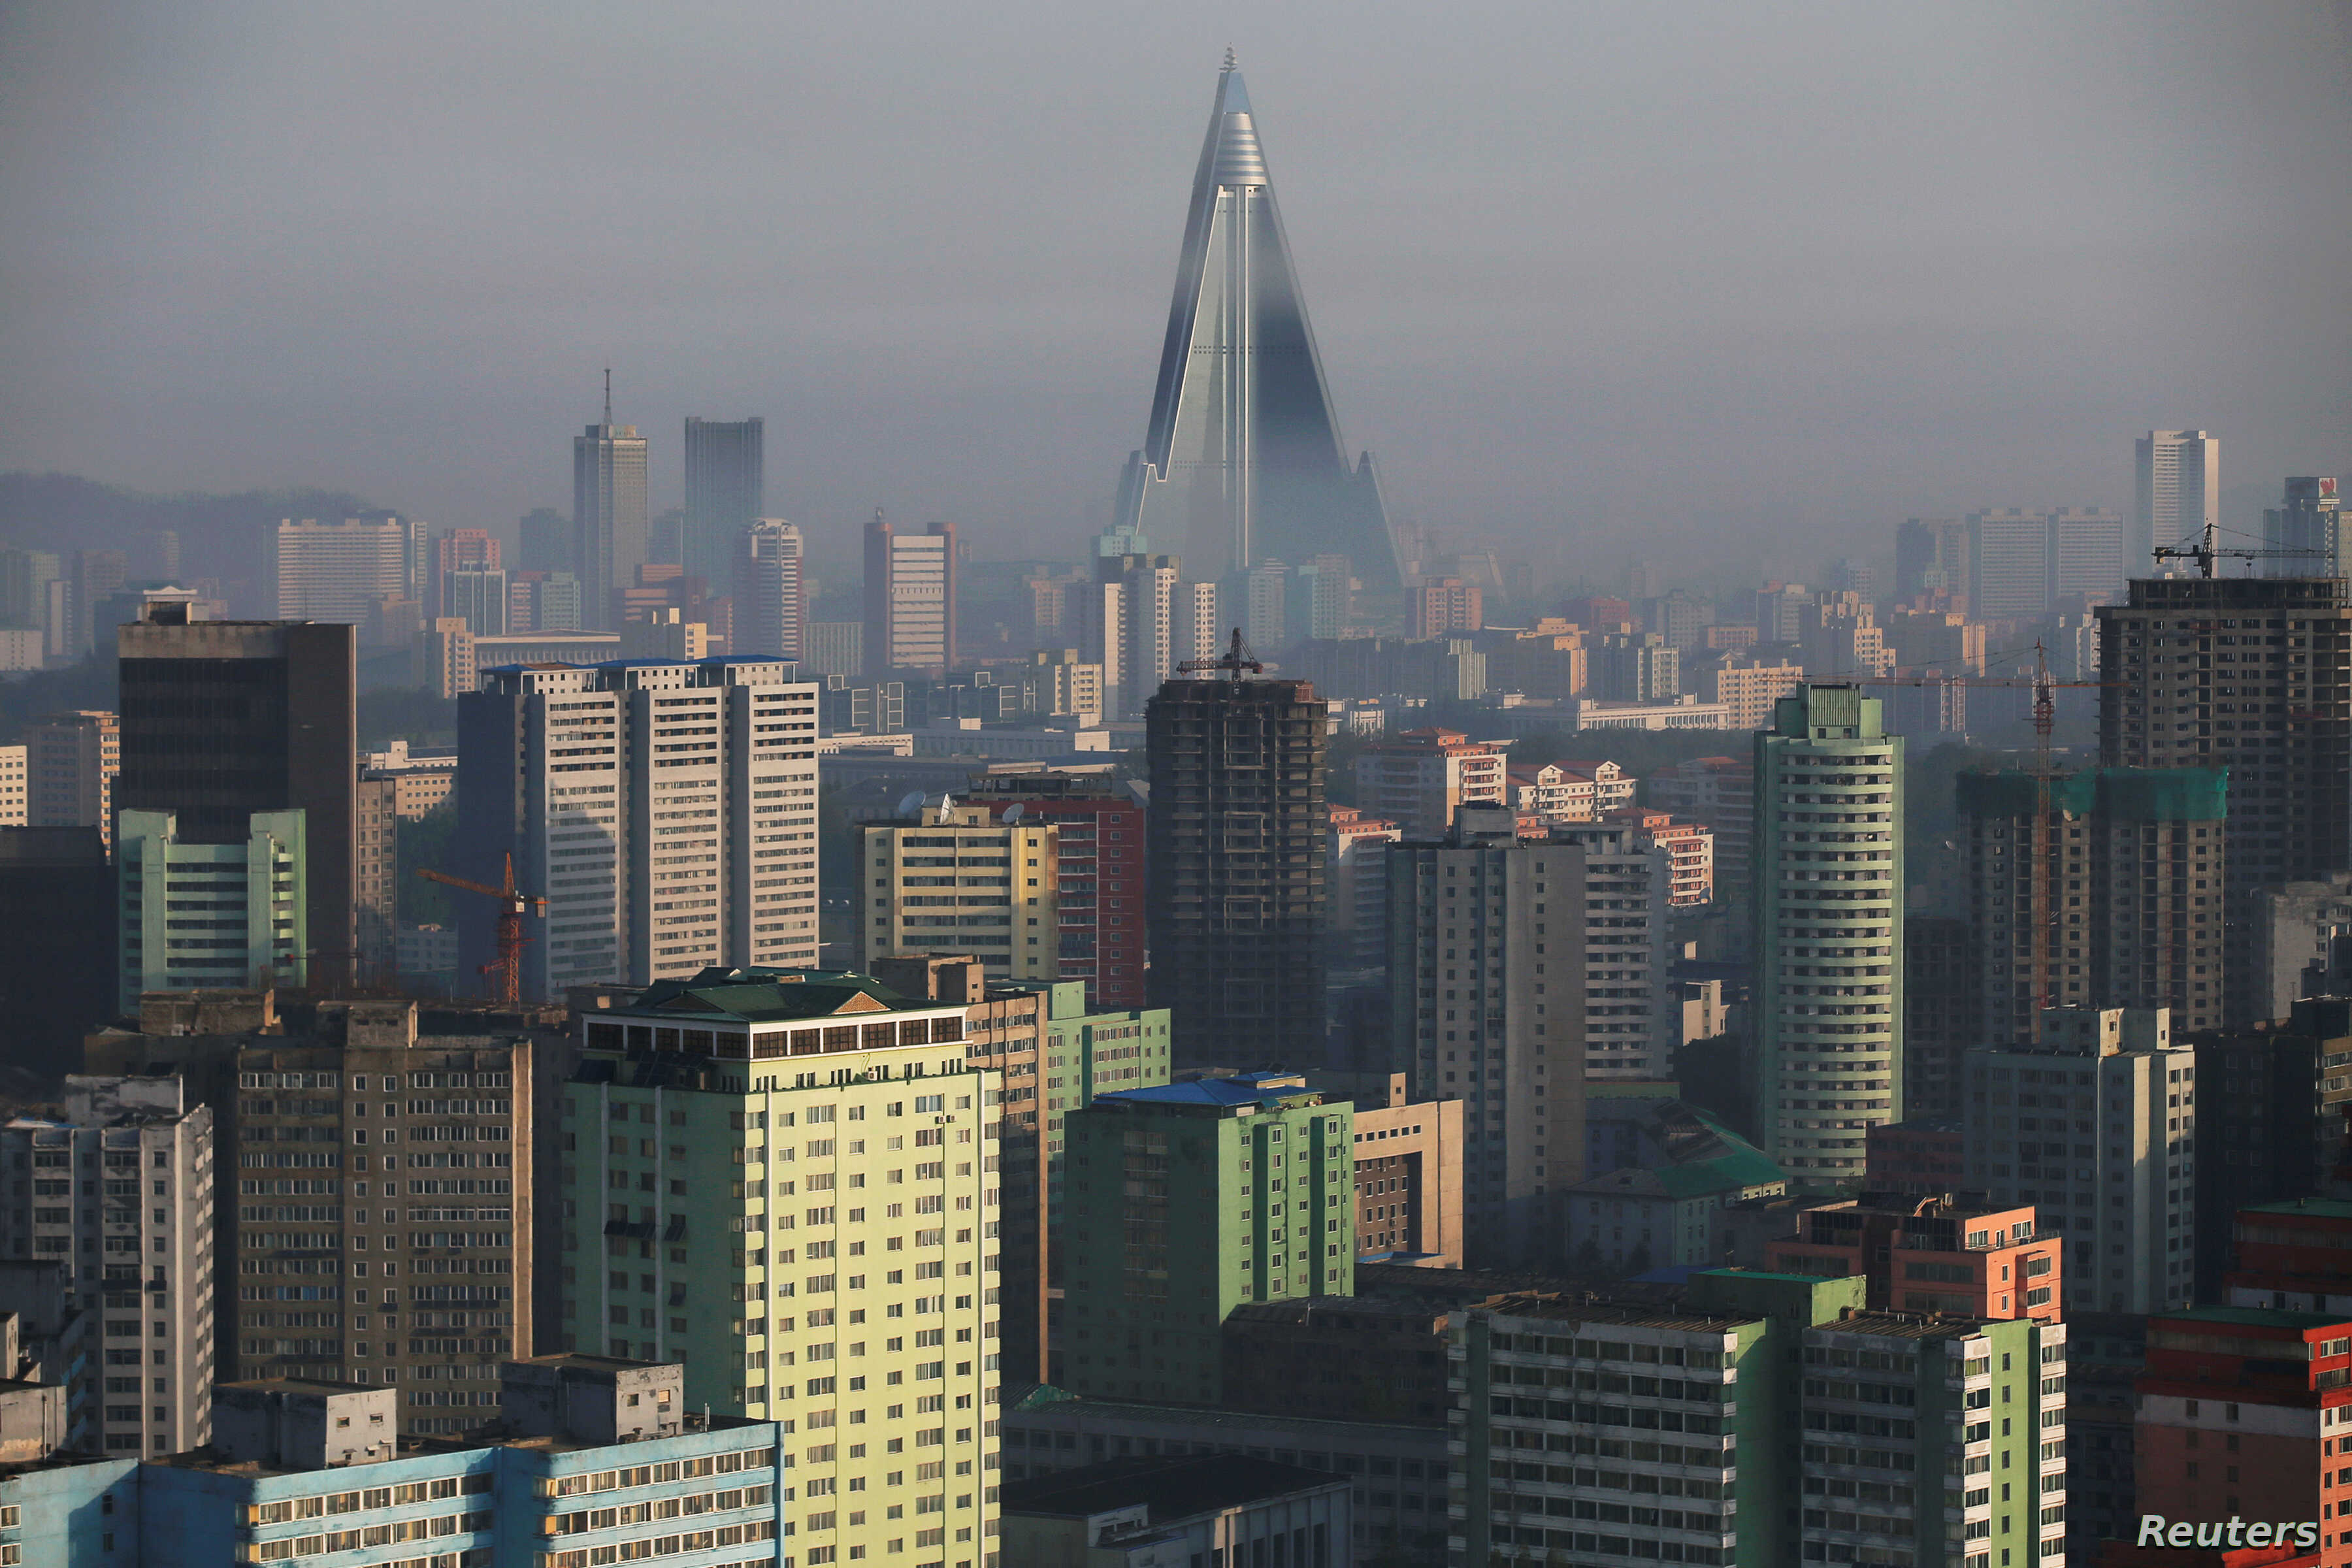 Despite Sanctions and Isolation, Pyongyang Skyline Grows | Voice of